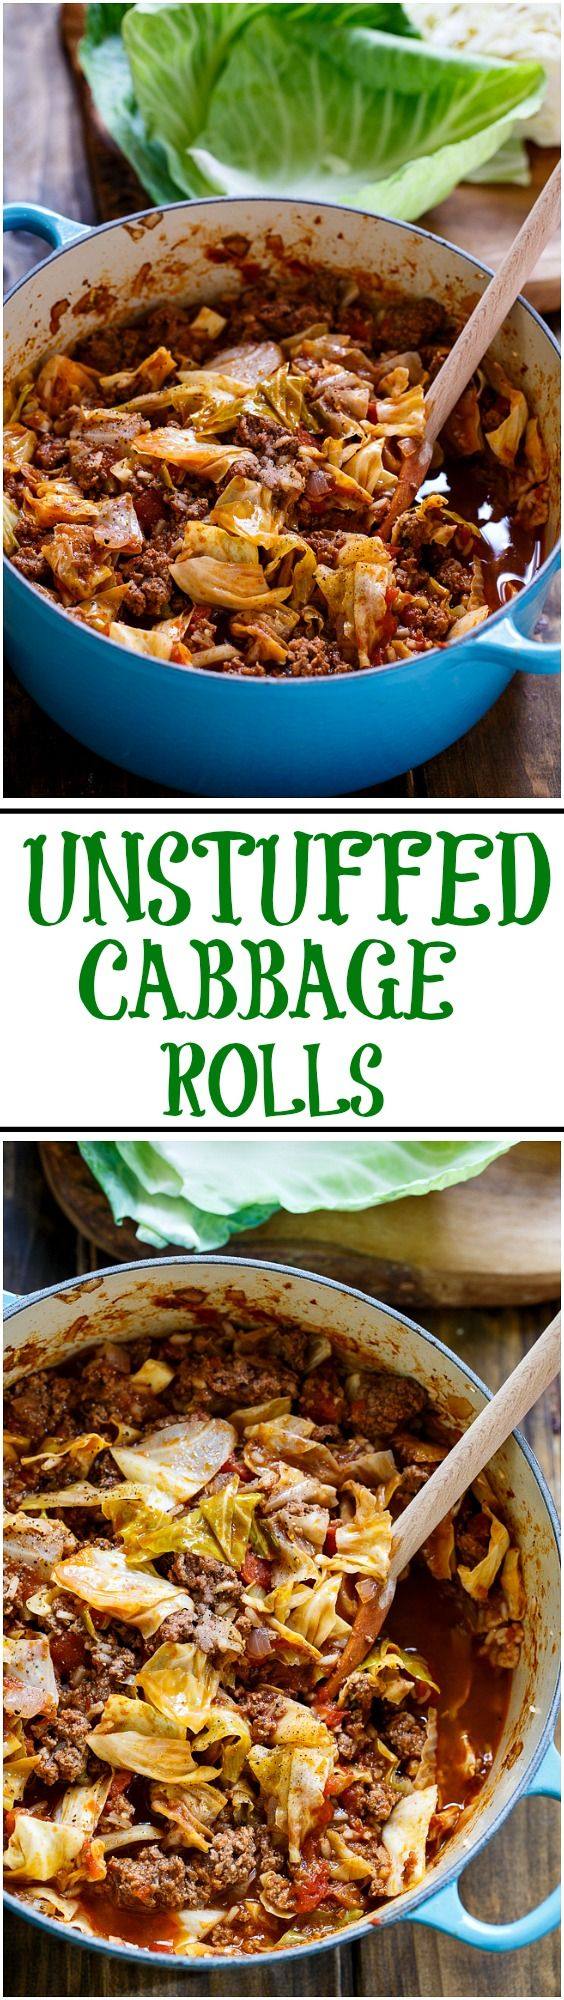 Unstuffed Cabbage Rolls. All the flavor of cabbage rolls but so much quicker and easier to make!